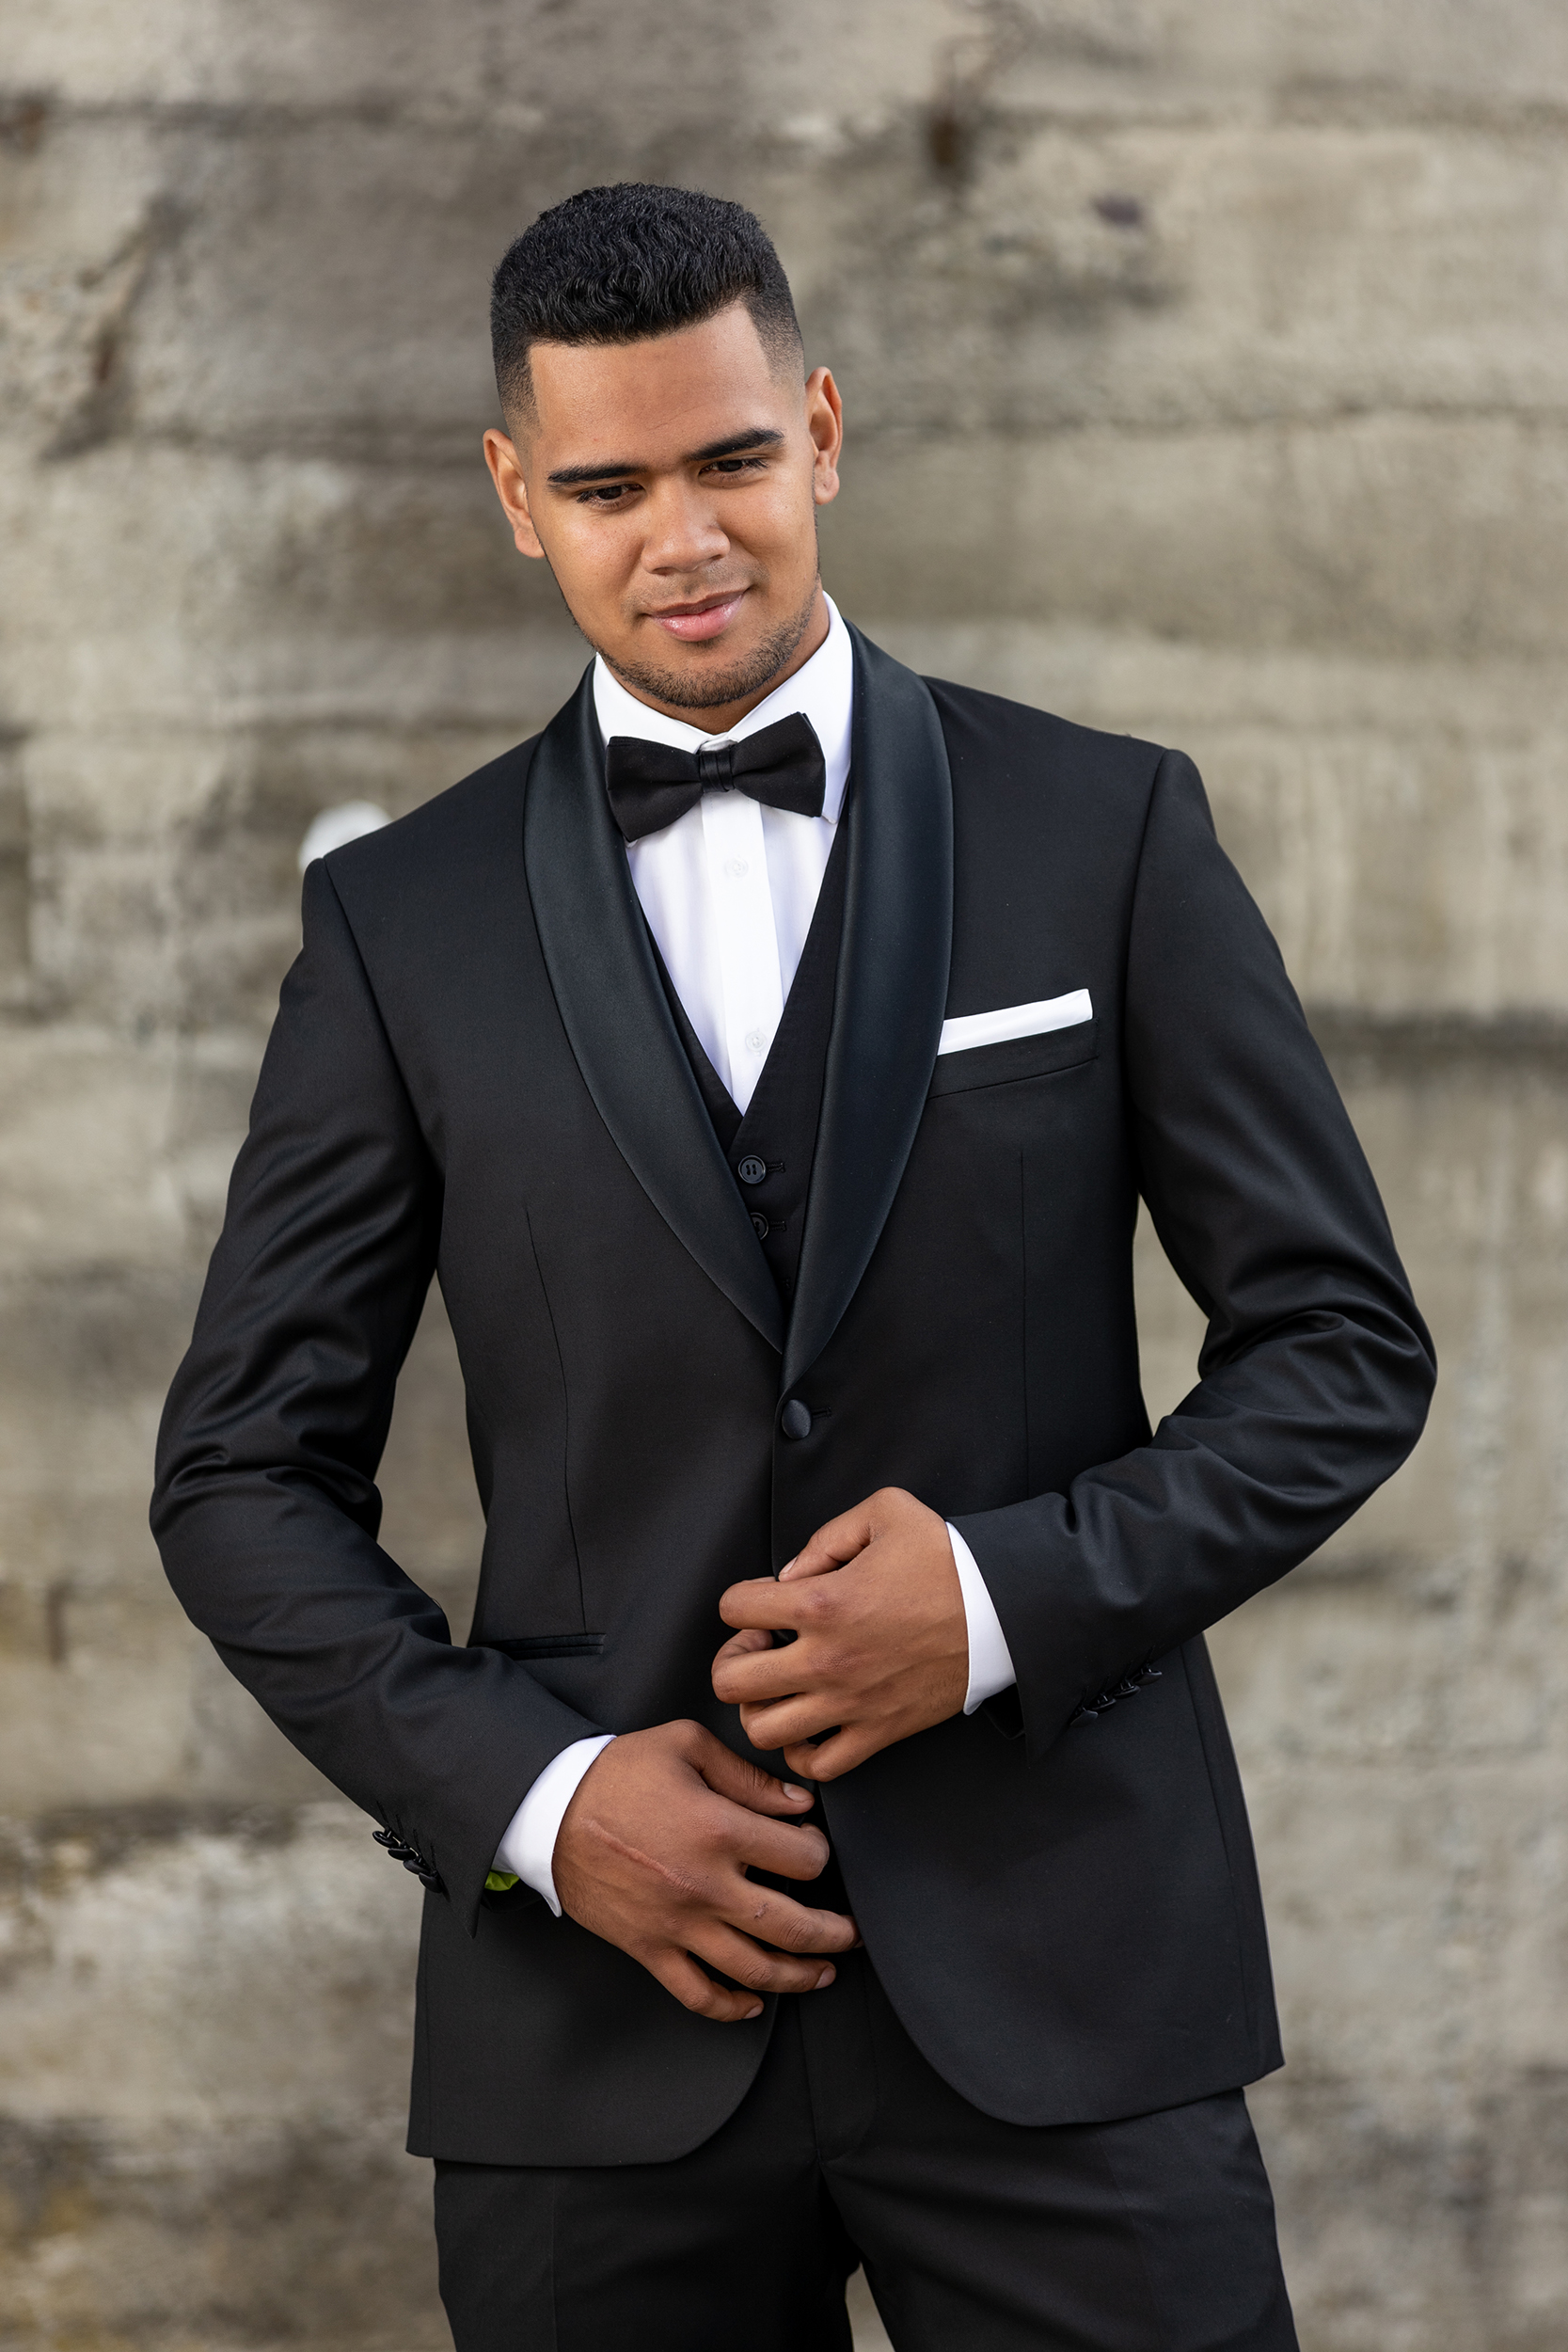 Joe—Black - Slim Fit- Black- Shawl collar with satin finish- 2 button suit jacket- Tapered suit trouserHire price $120 NZDReg: 84—144Short: 104 & 116Tall: 92—120